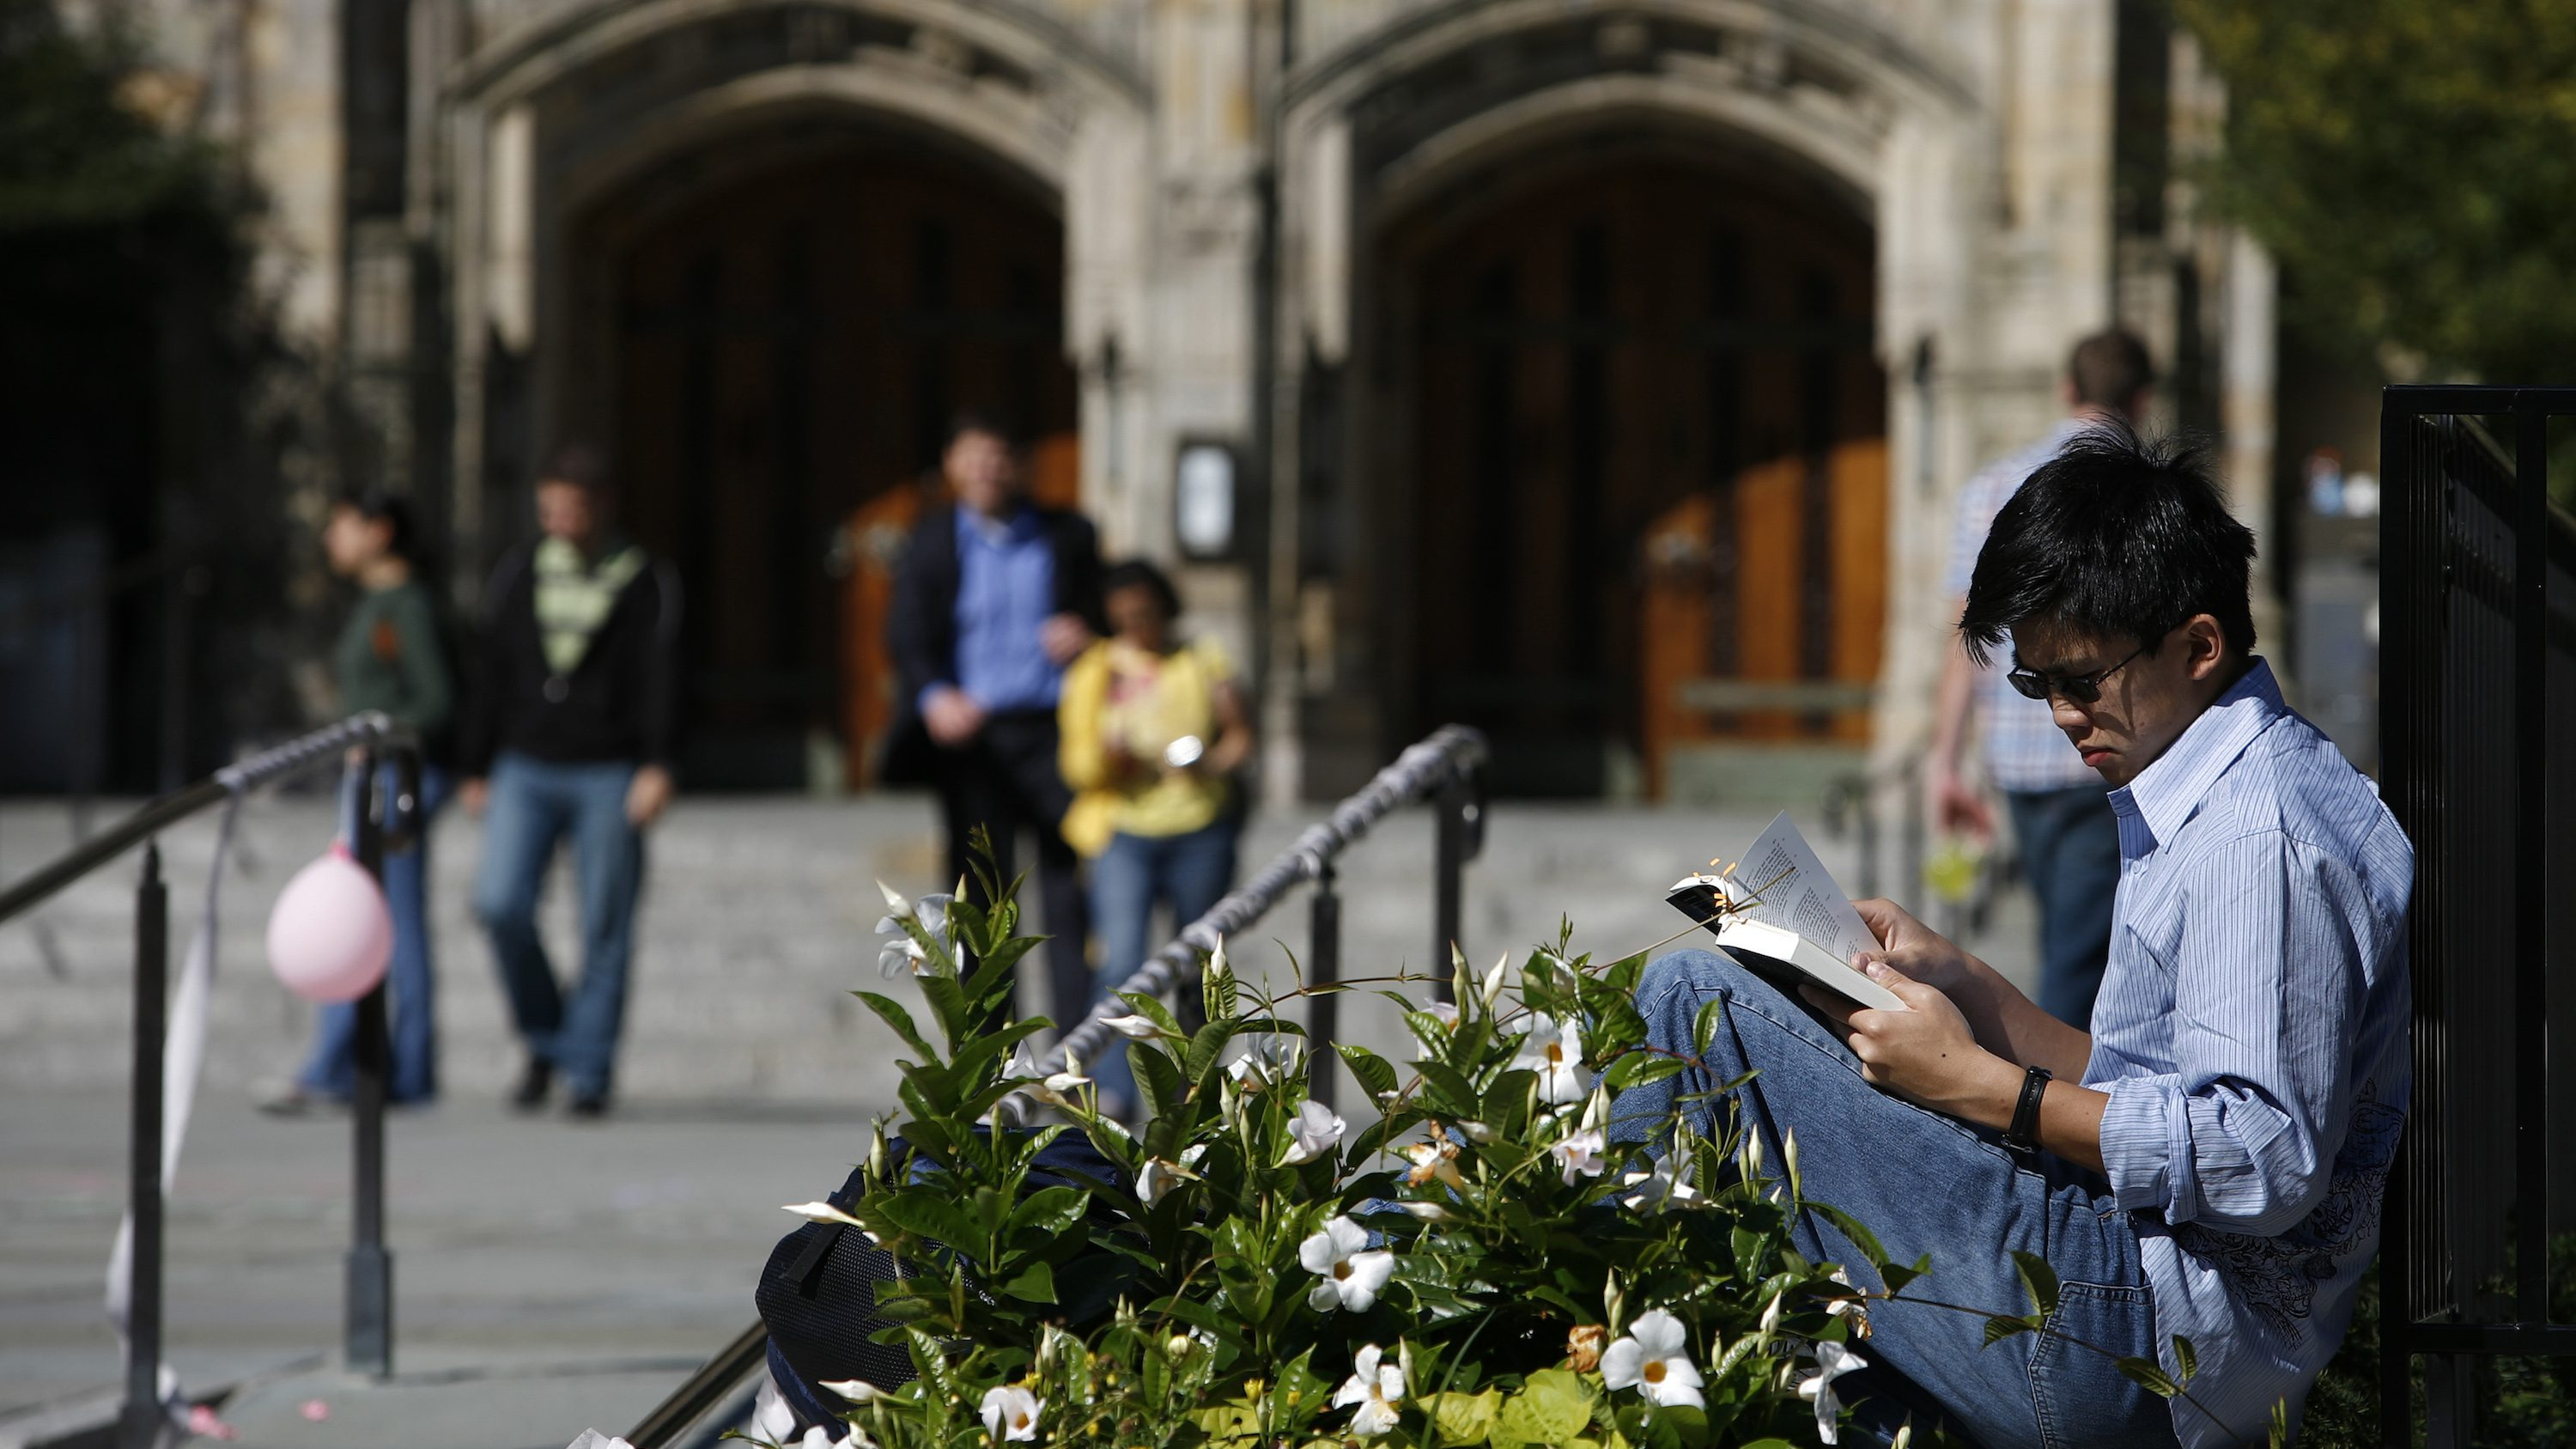 A student read a book on the campus of Yale University in New Haven, Connecticut, October 7, 2009.